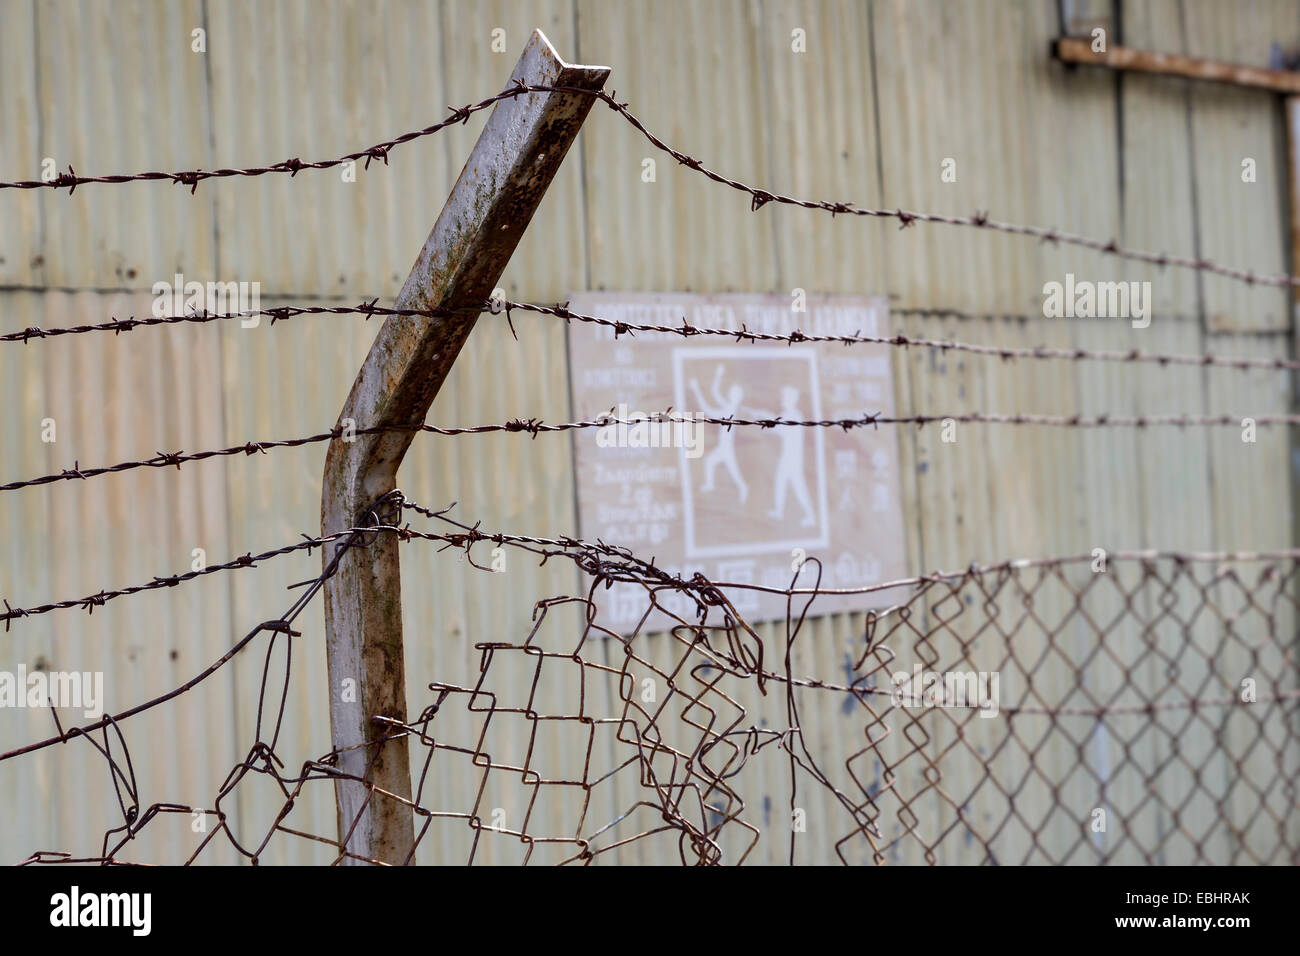 Old barbed wire fence around building, Miri, Malaysia Stock Photo ...